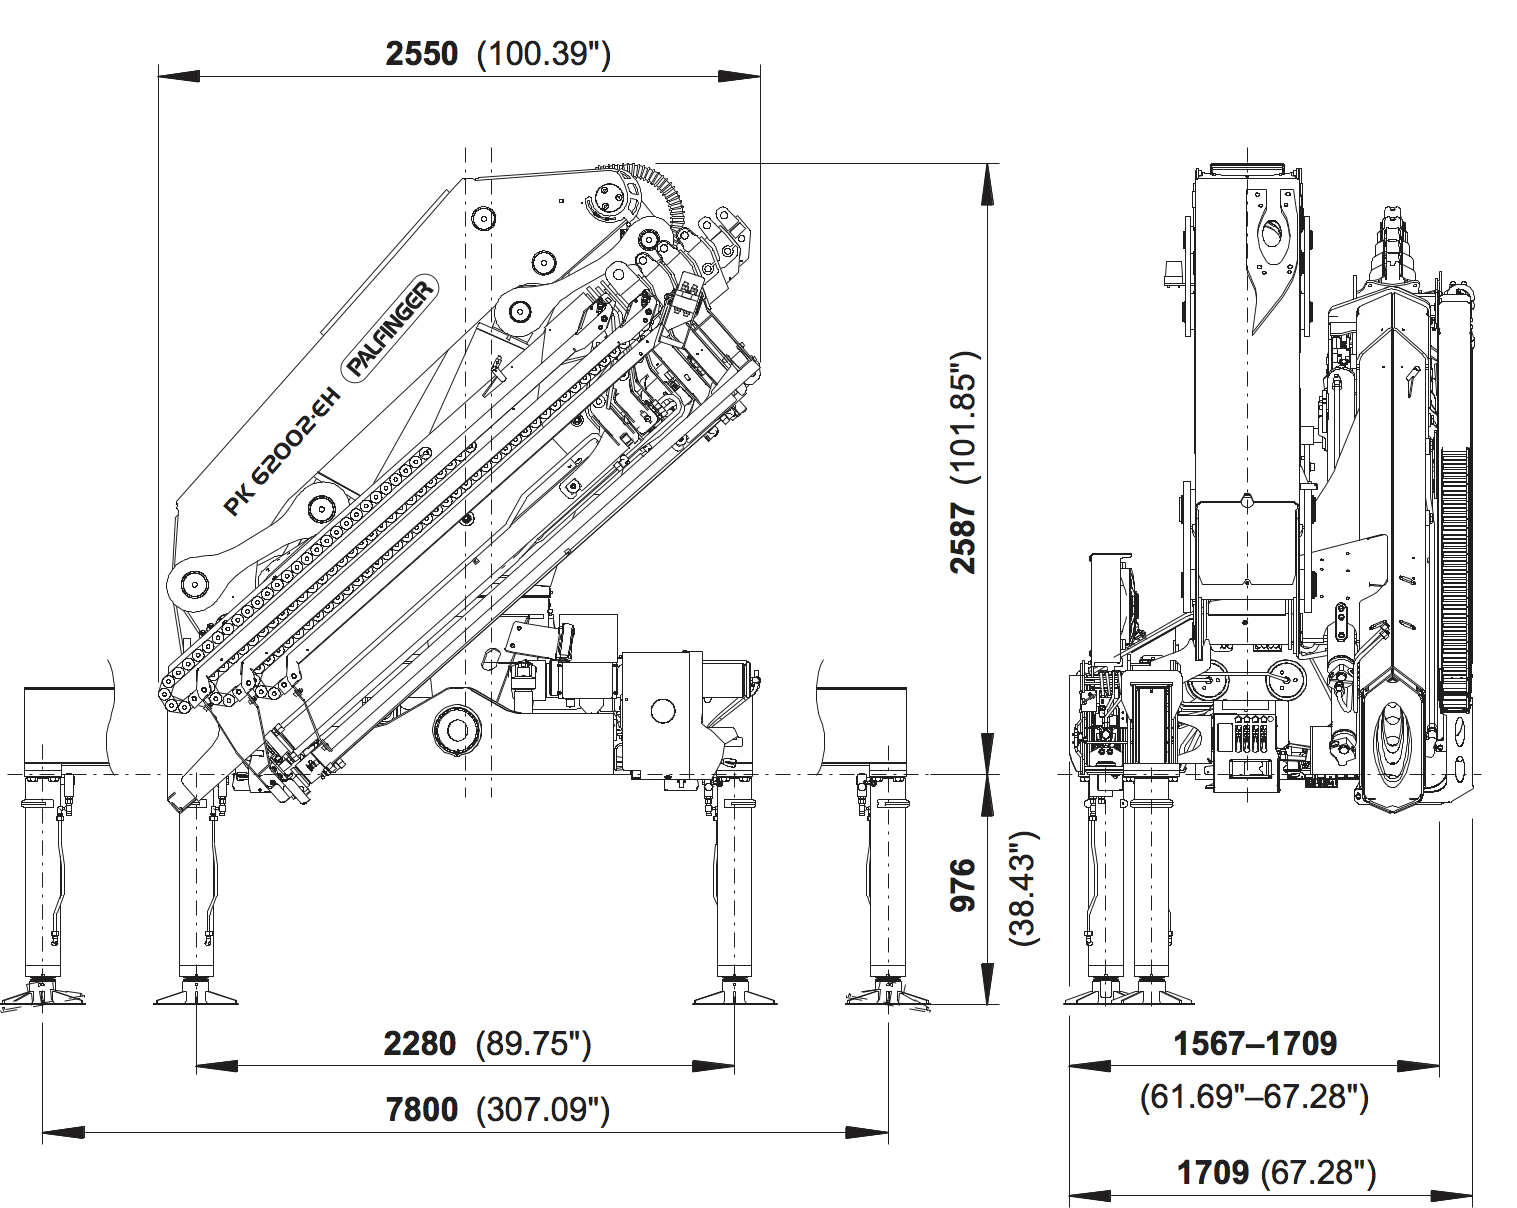 Pk 62002 Eh High Performance Palfinger Cycle Country Electric Lift Wiring Diagram Specific Regulations Must Be Observed Dimensions May Vary Subject To Technical Changes Errors And Translation Mistakes